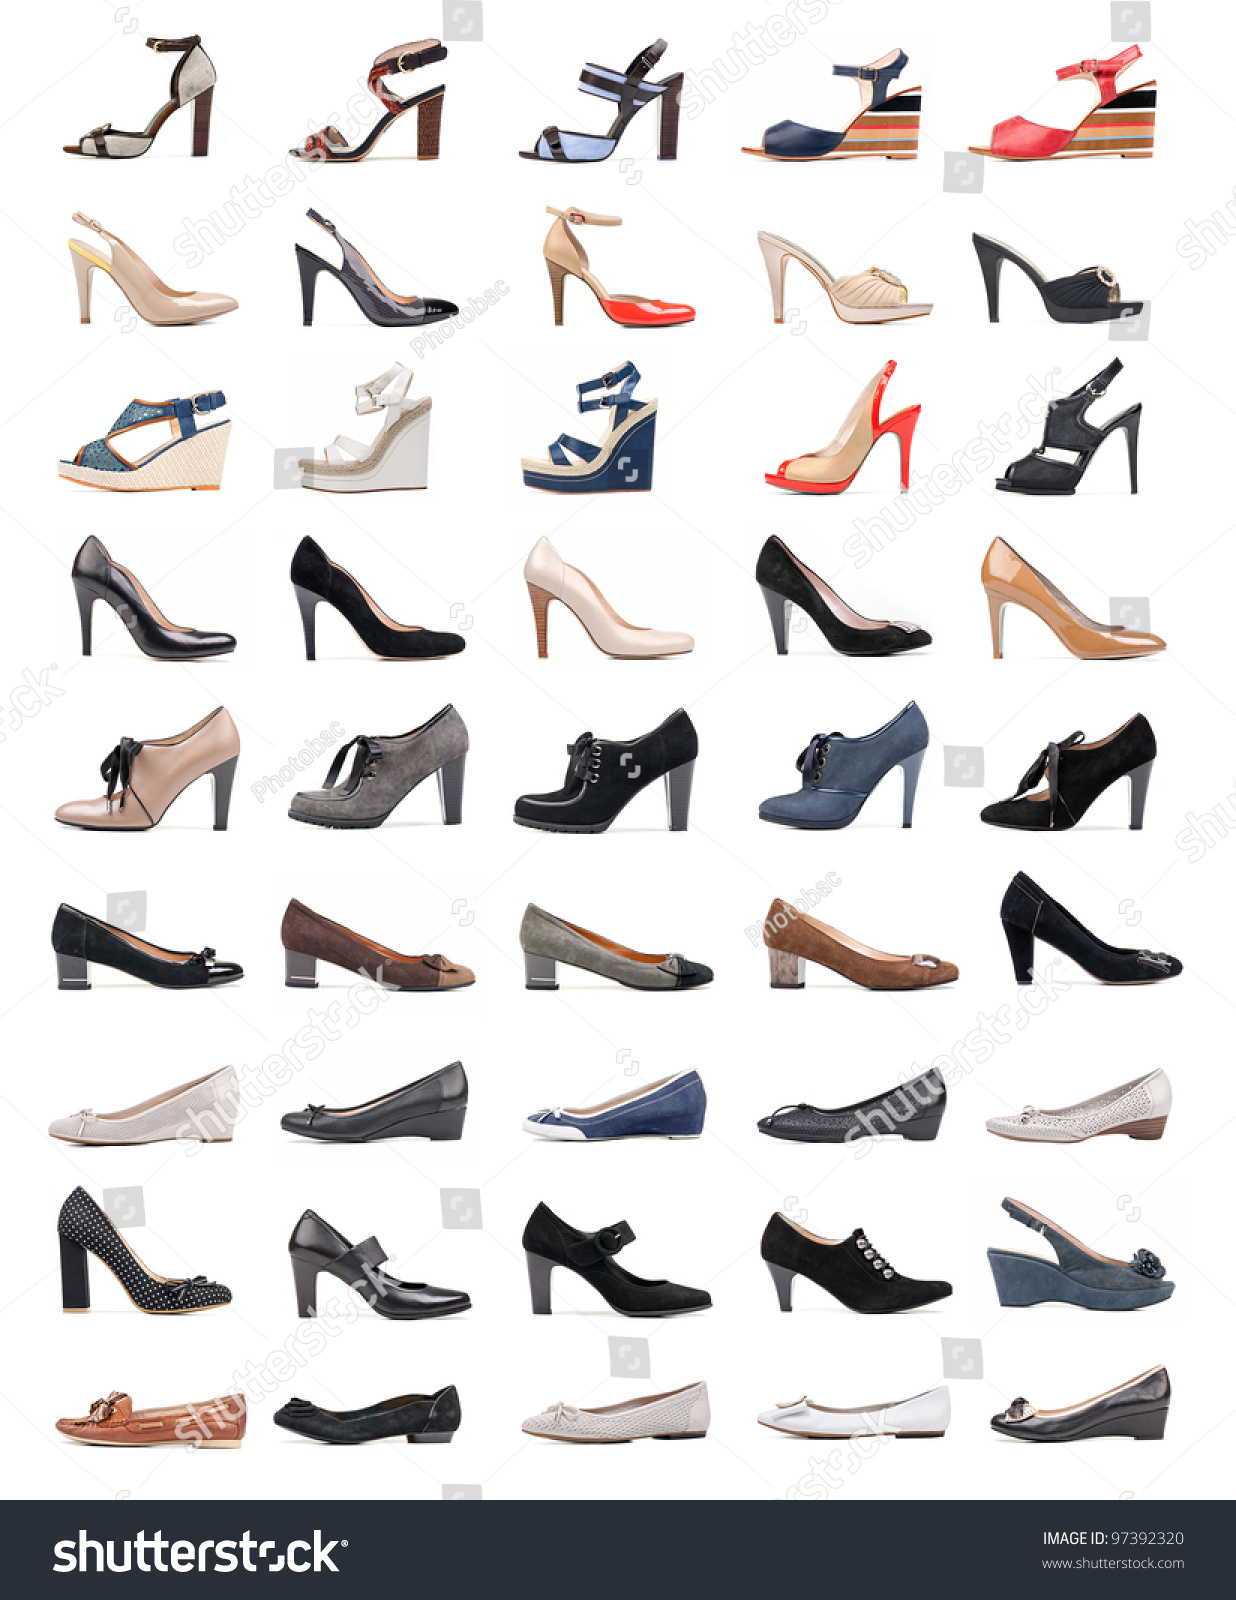 Elegant Figure 2 Types Of Shoes Owned And Worn By 91 Women With Diabetes And